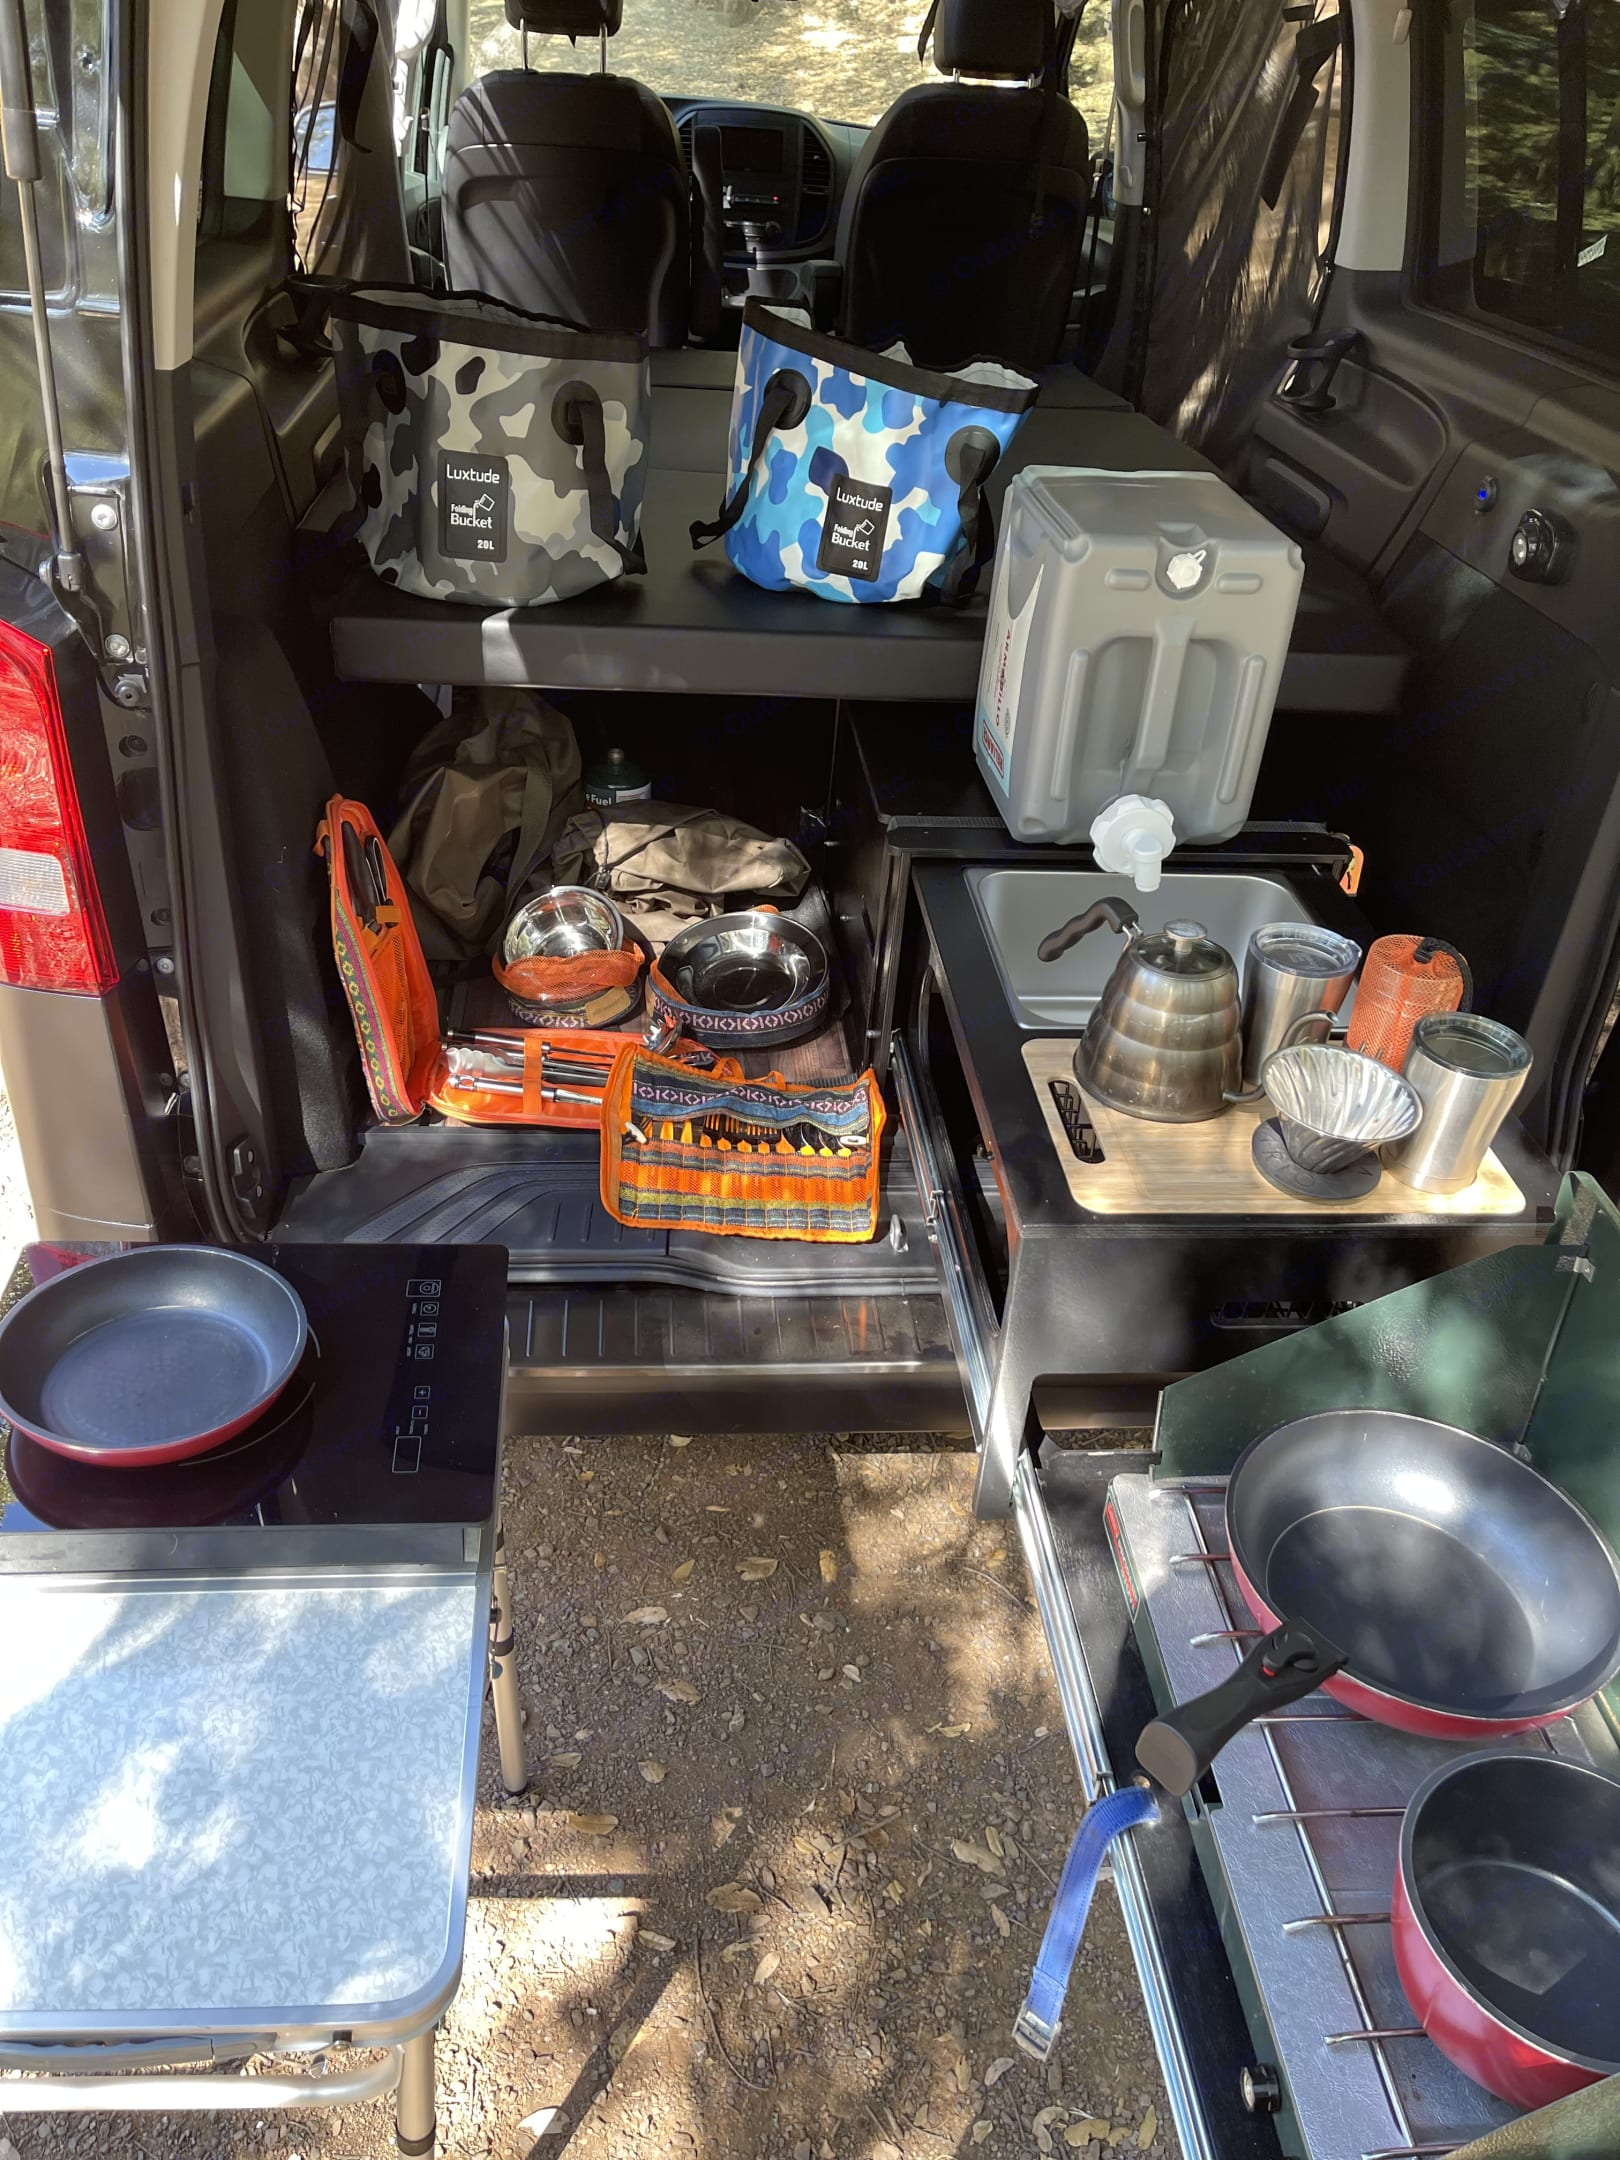 Induction cook top, outdoor table all the pots and pans cookware you will need  and so much more.. Mercedes-Benz Sprinter 2020